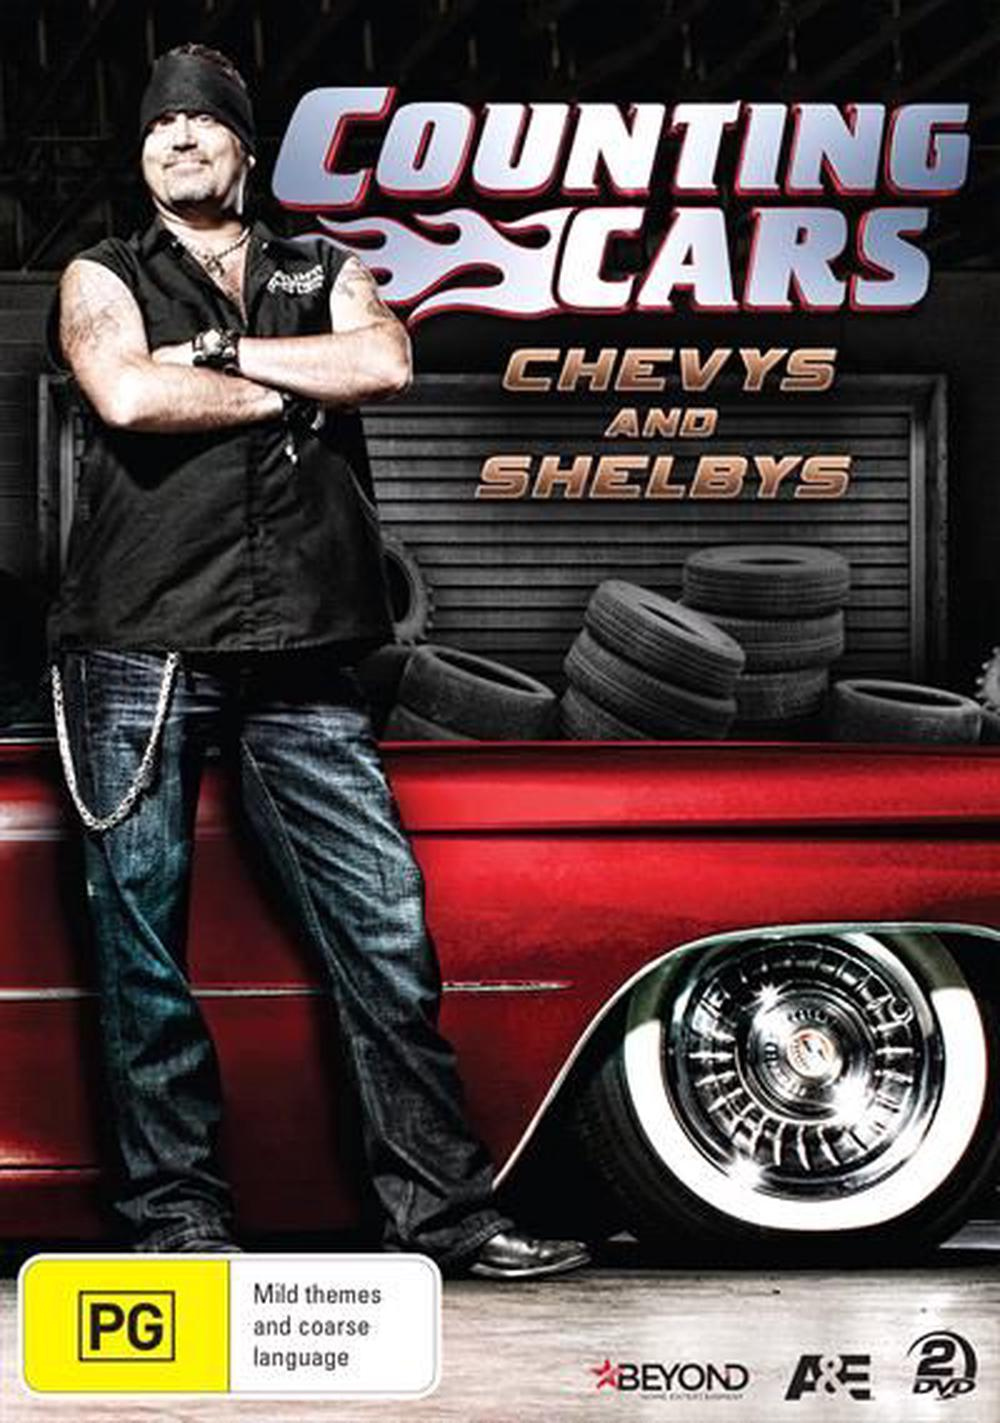 Counting Cars - Chevys And Shelbys